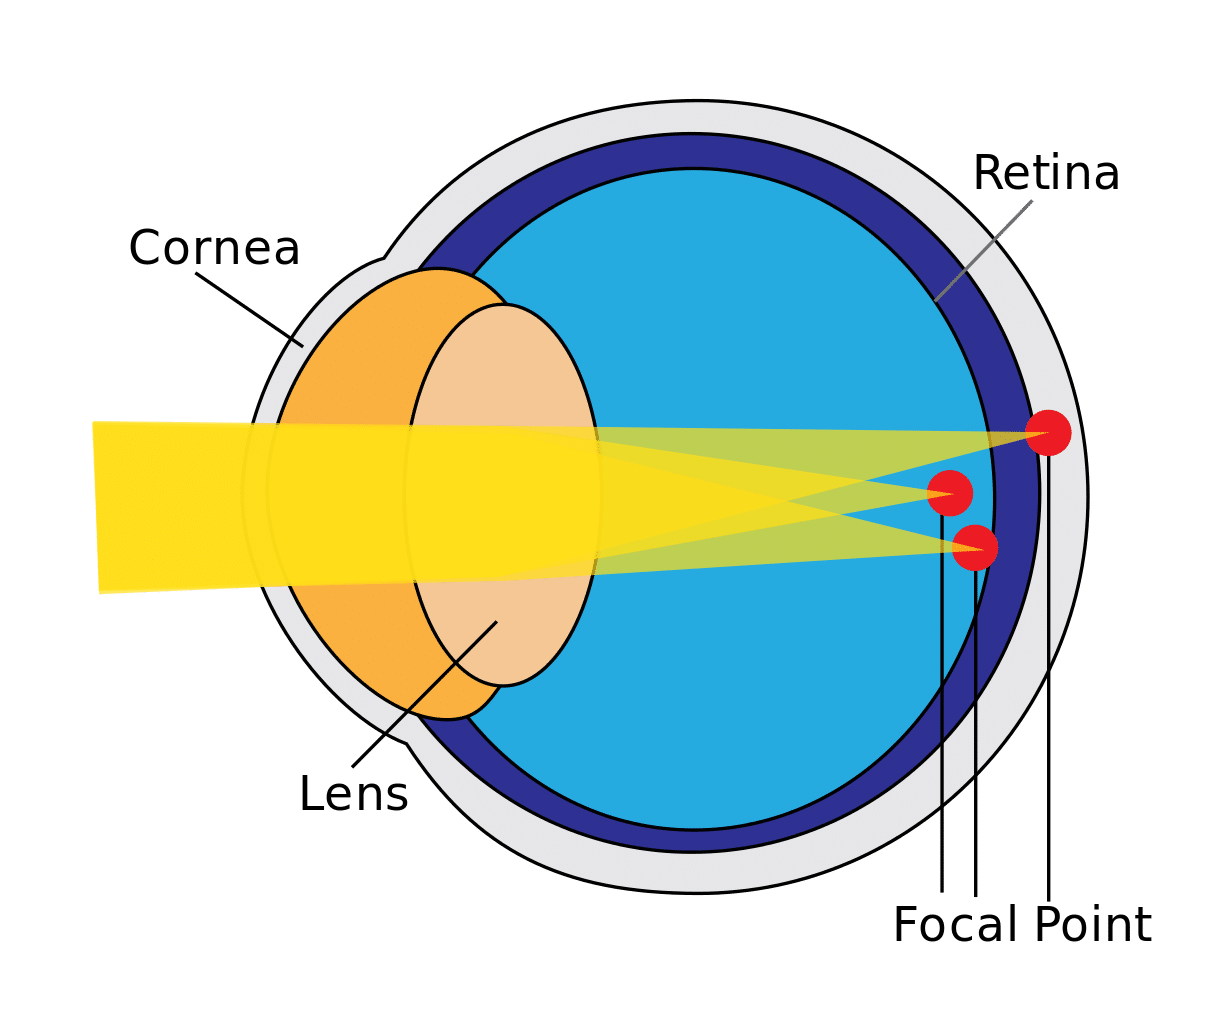 Finding the best lens for astigmatism of your eye